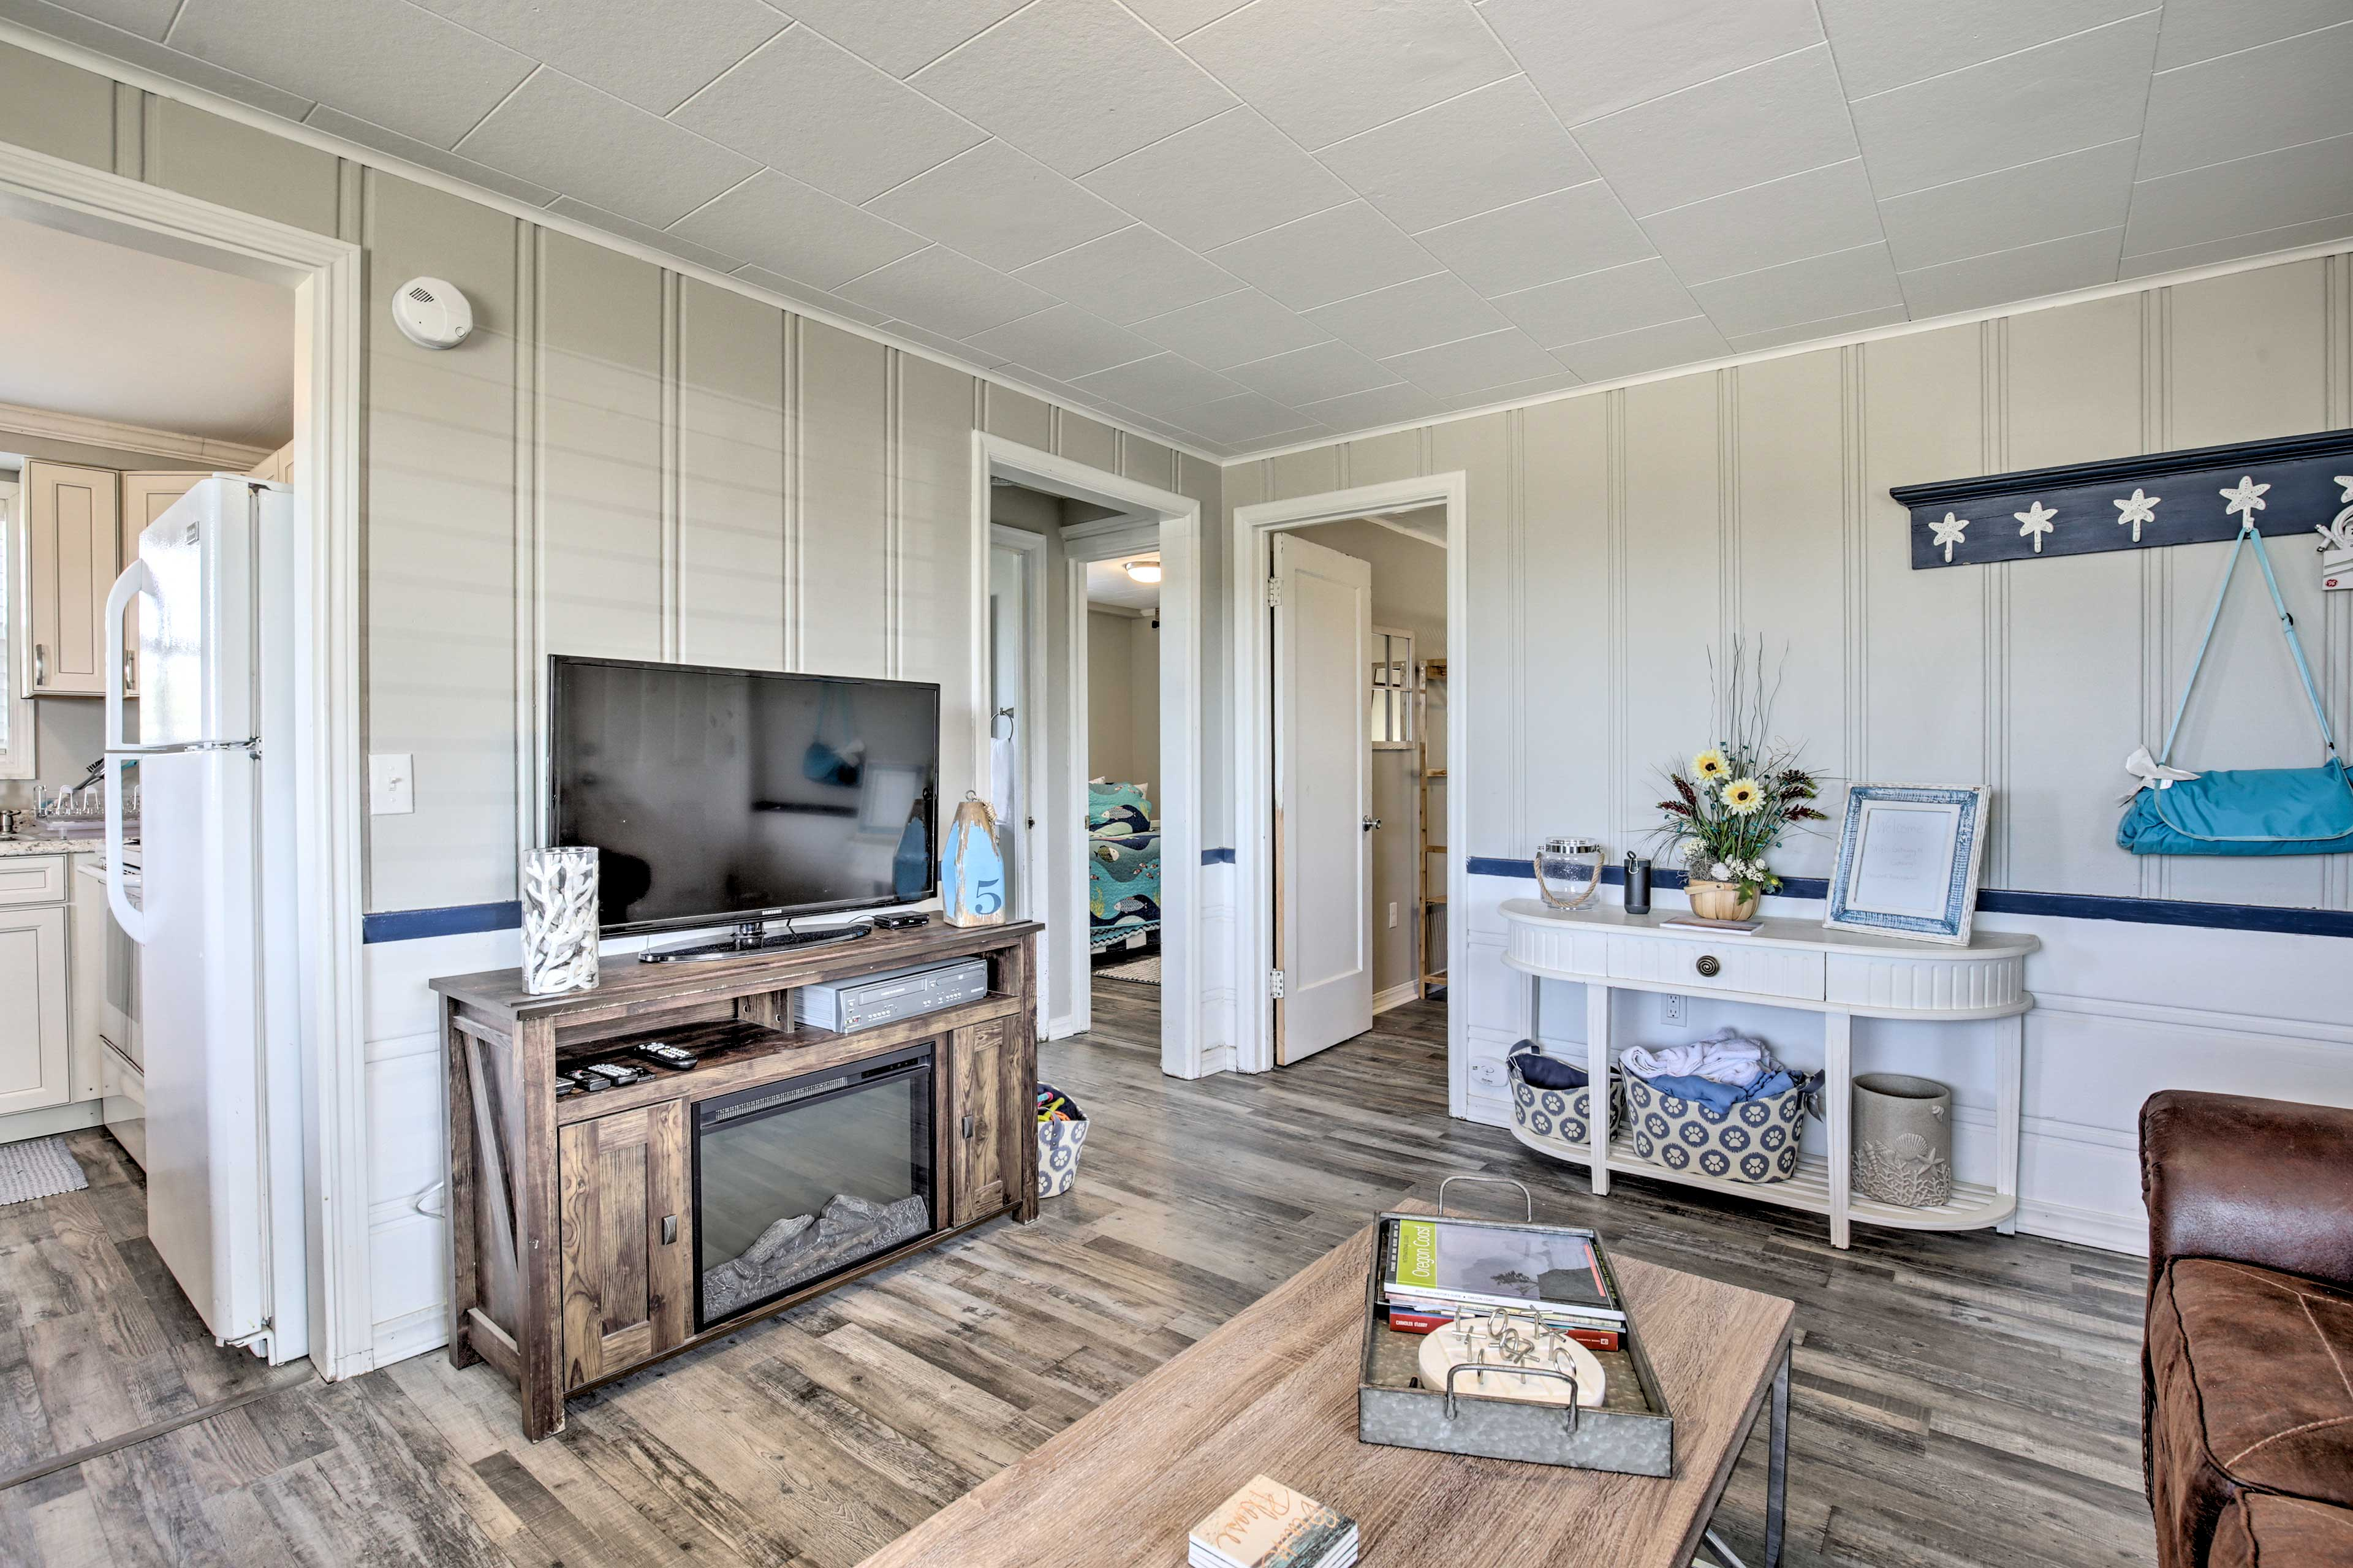 Find all of the beach amenities you need!